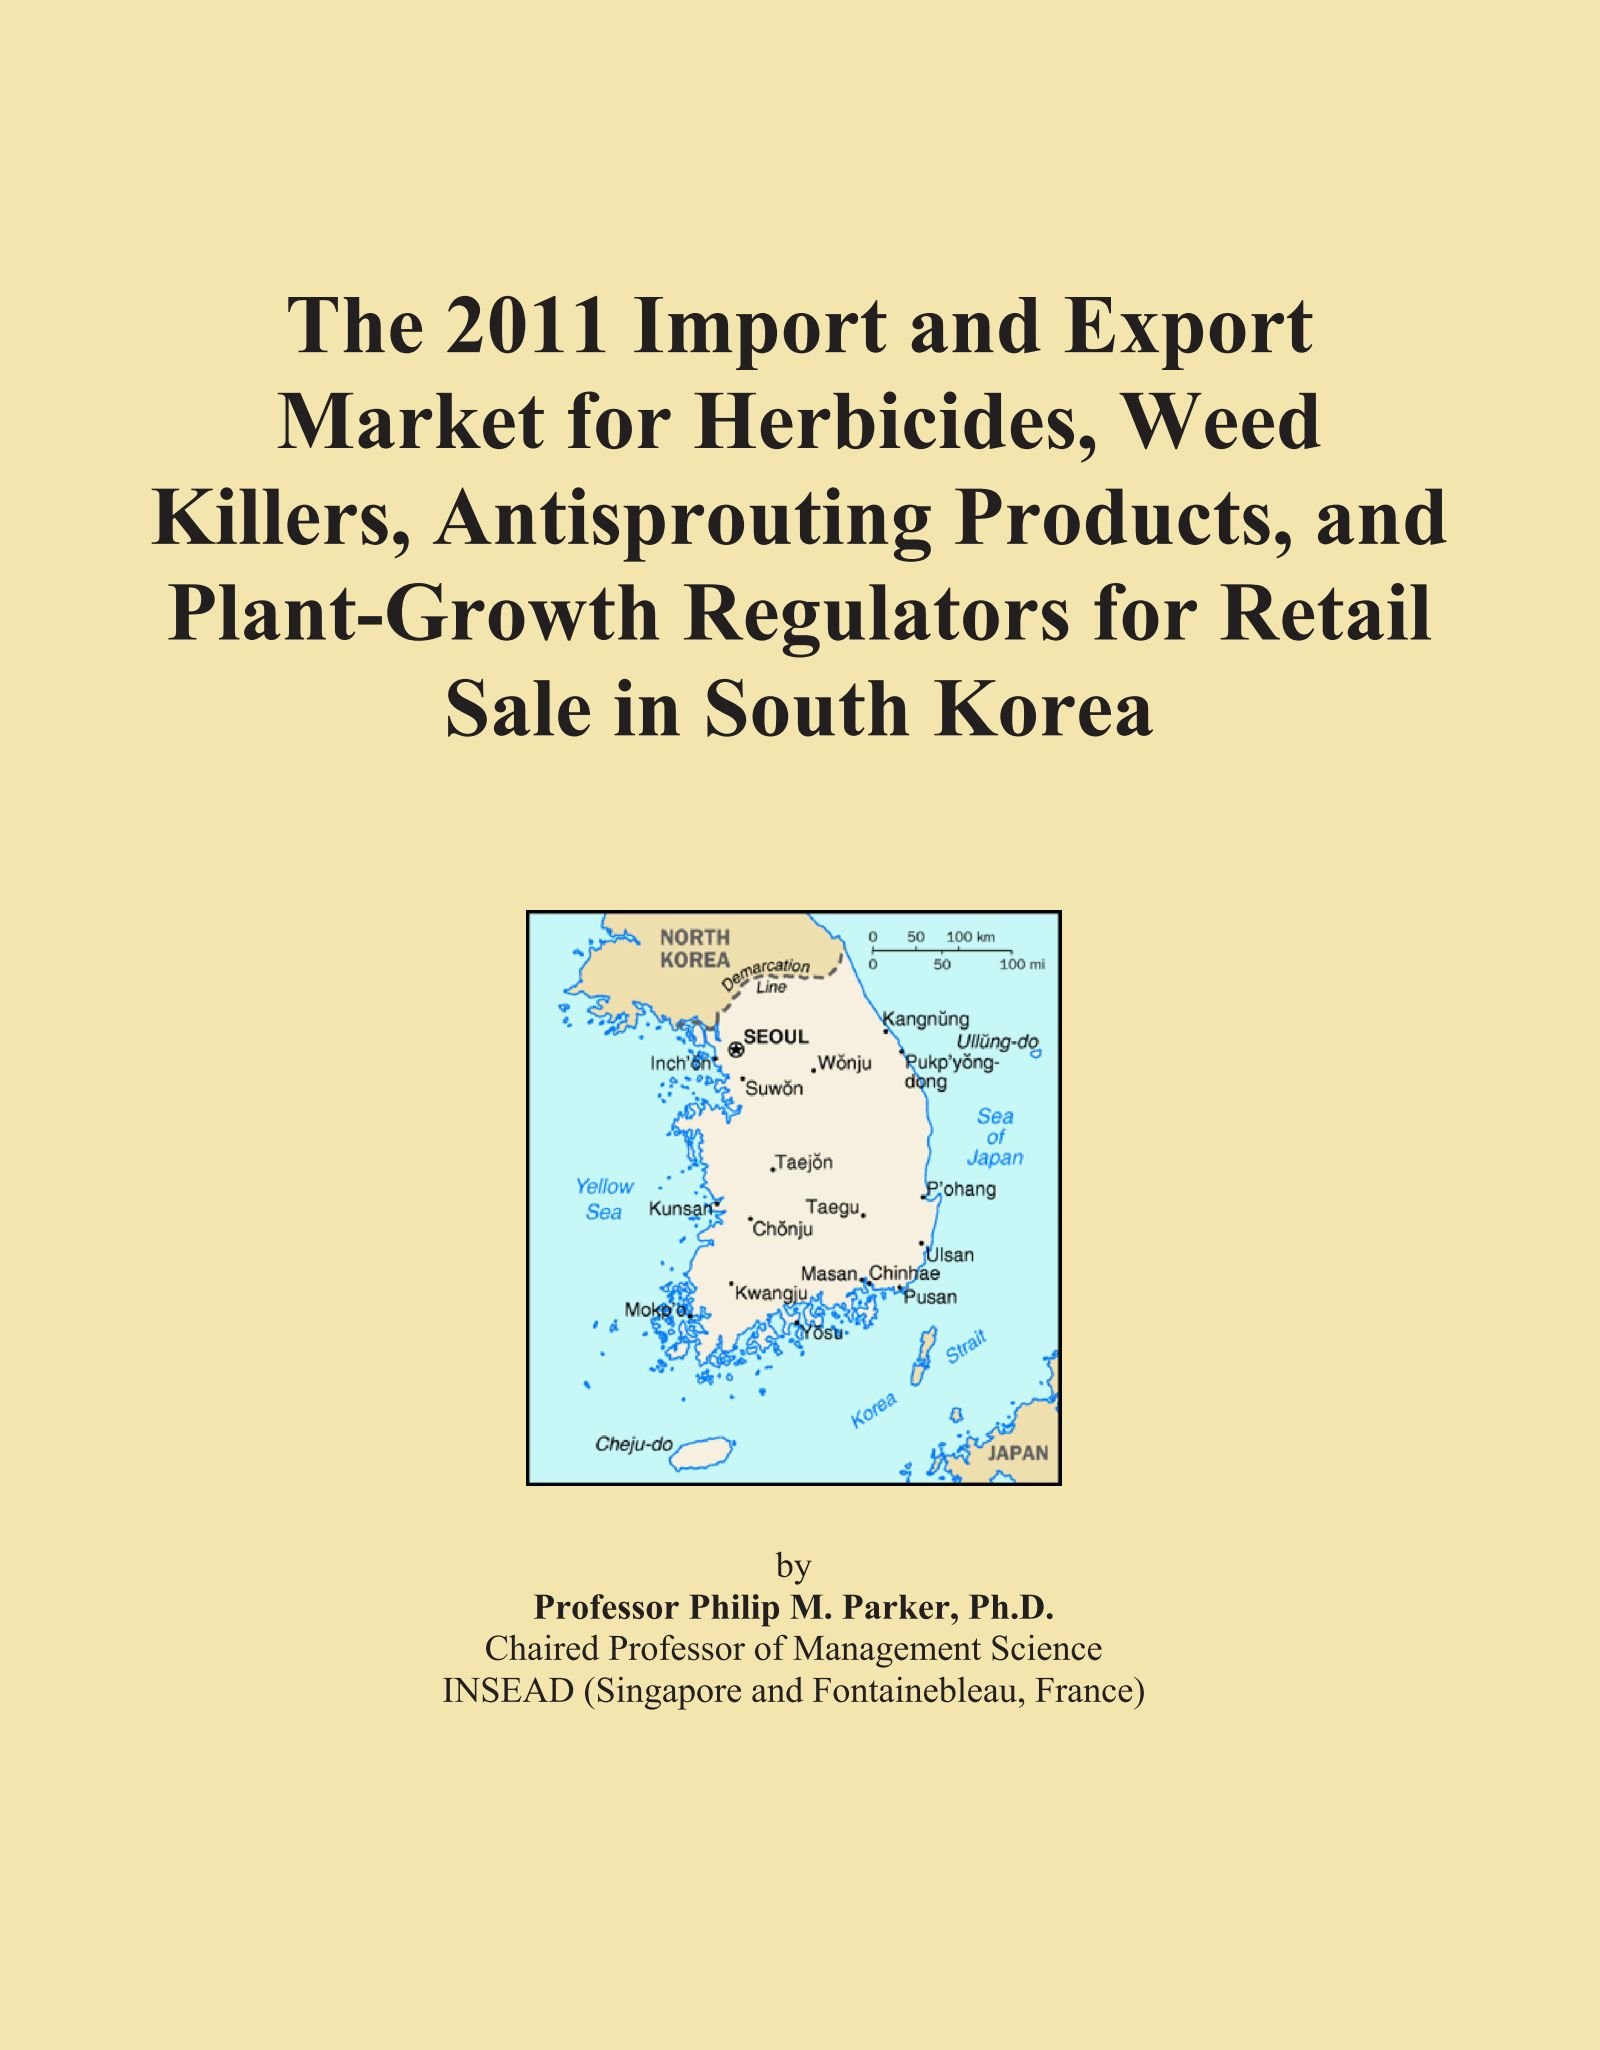 The 2011 Import and Export Market for Herbicides, Weed Killers, Antisprouting Products, and Plant-Growth Regulators for Retail Sale in South Korea PDF